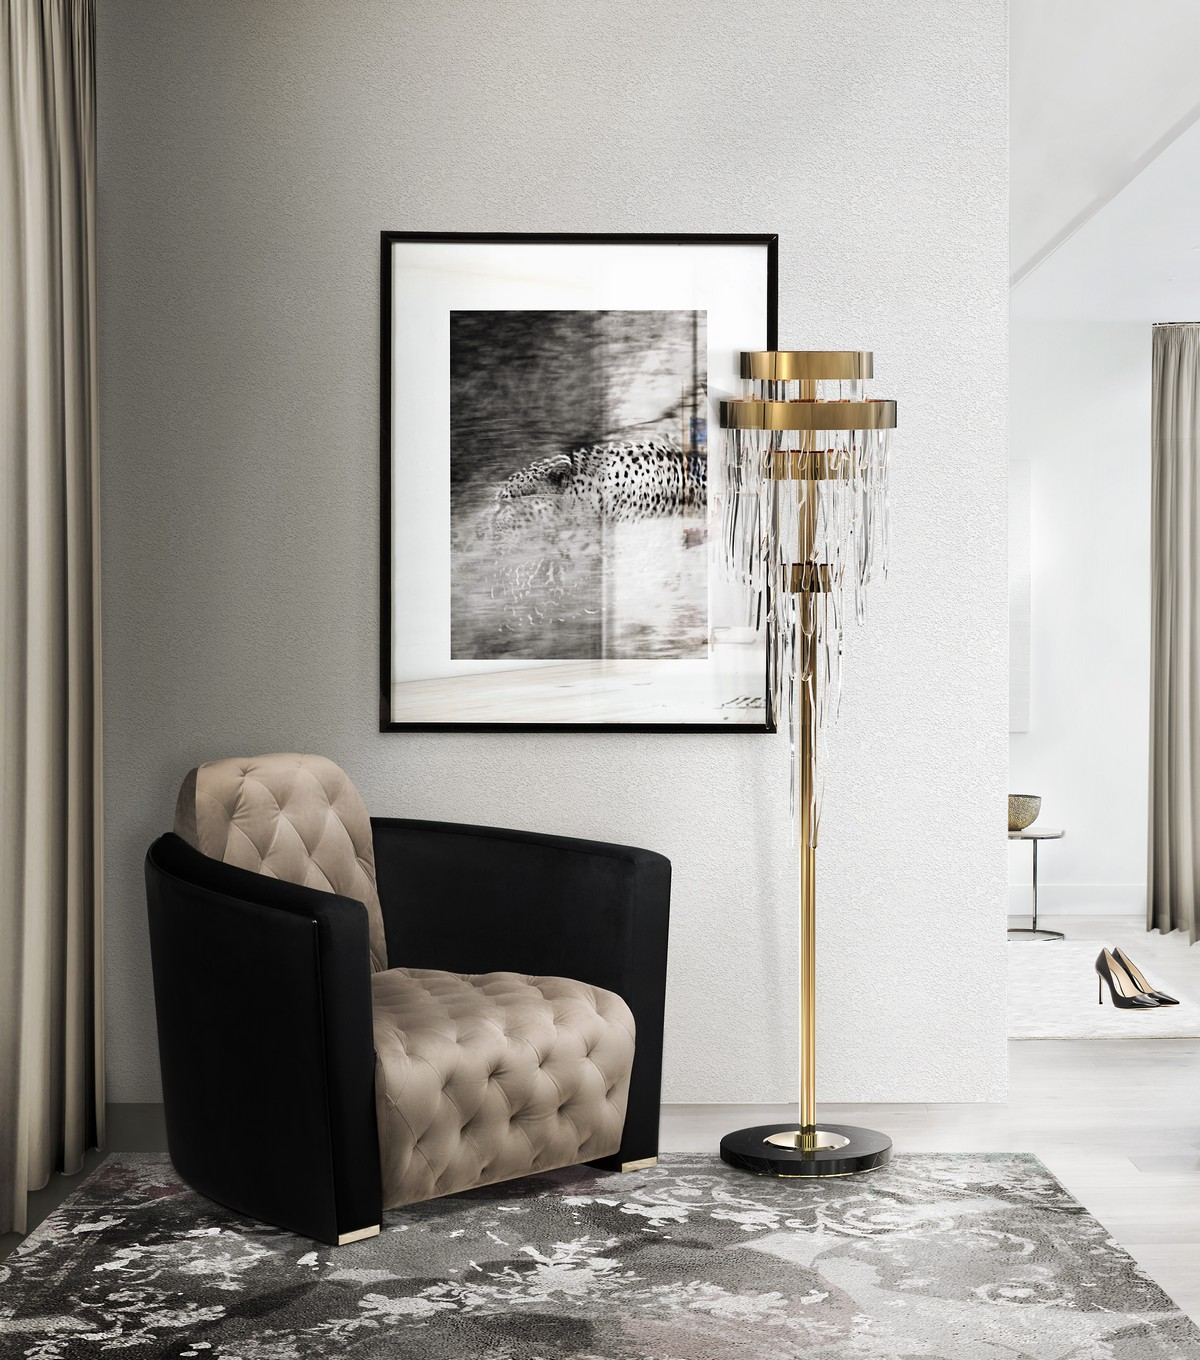 Exclusive Lighting Designs You Will Love (Part III) exclusive lighting designs Exclusive Lighting Designs You Will Love (Part III) babel floor